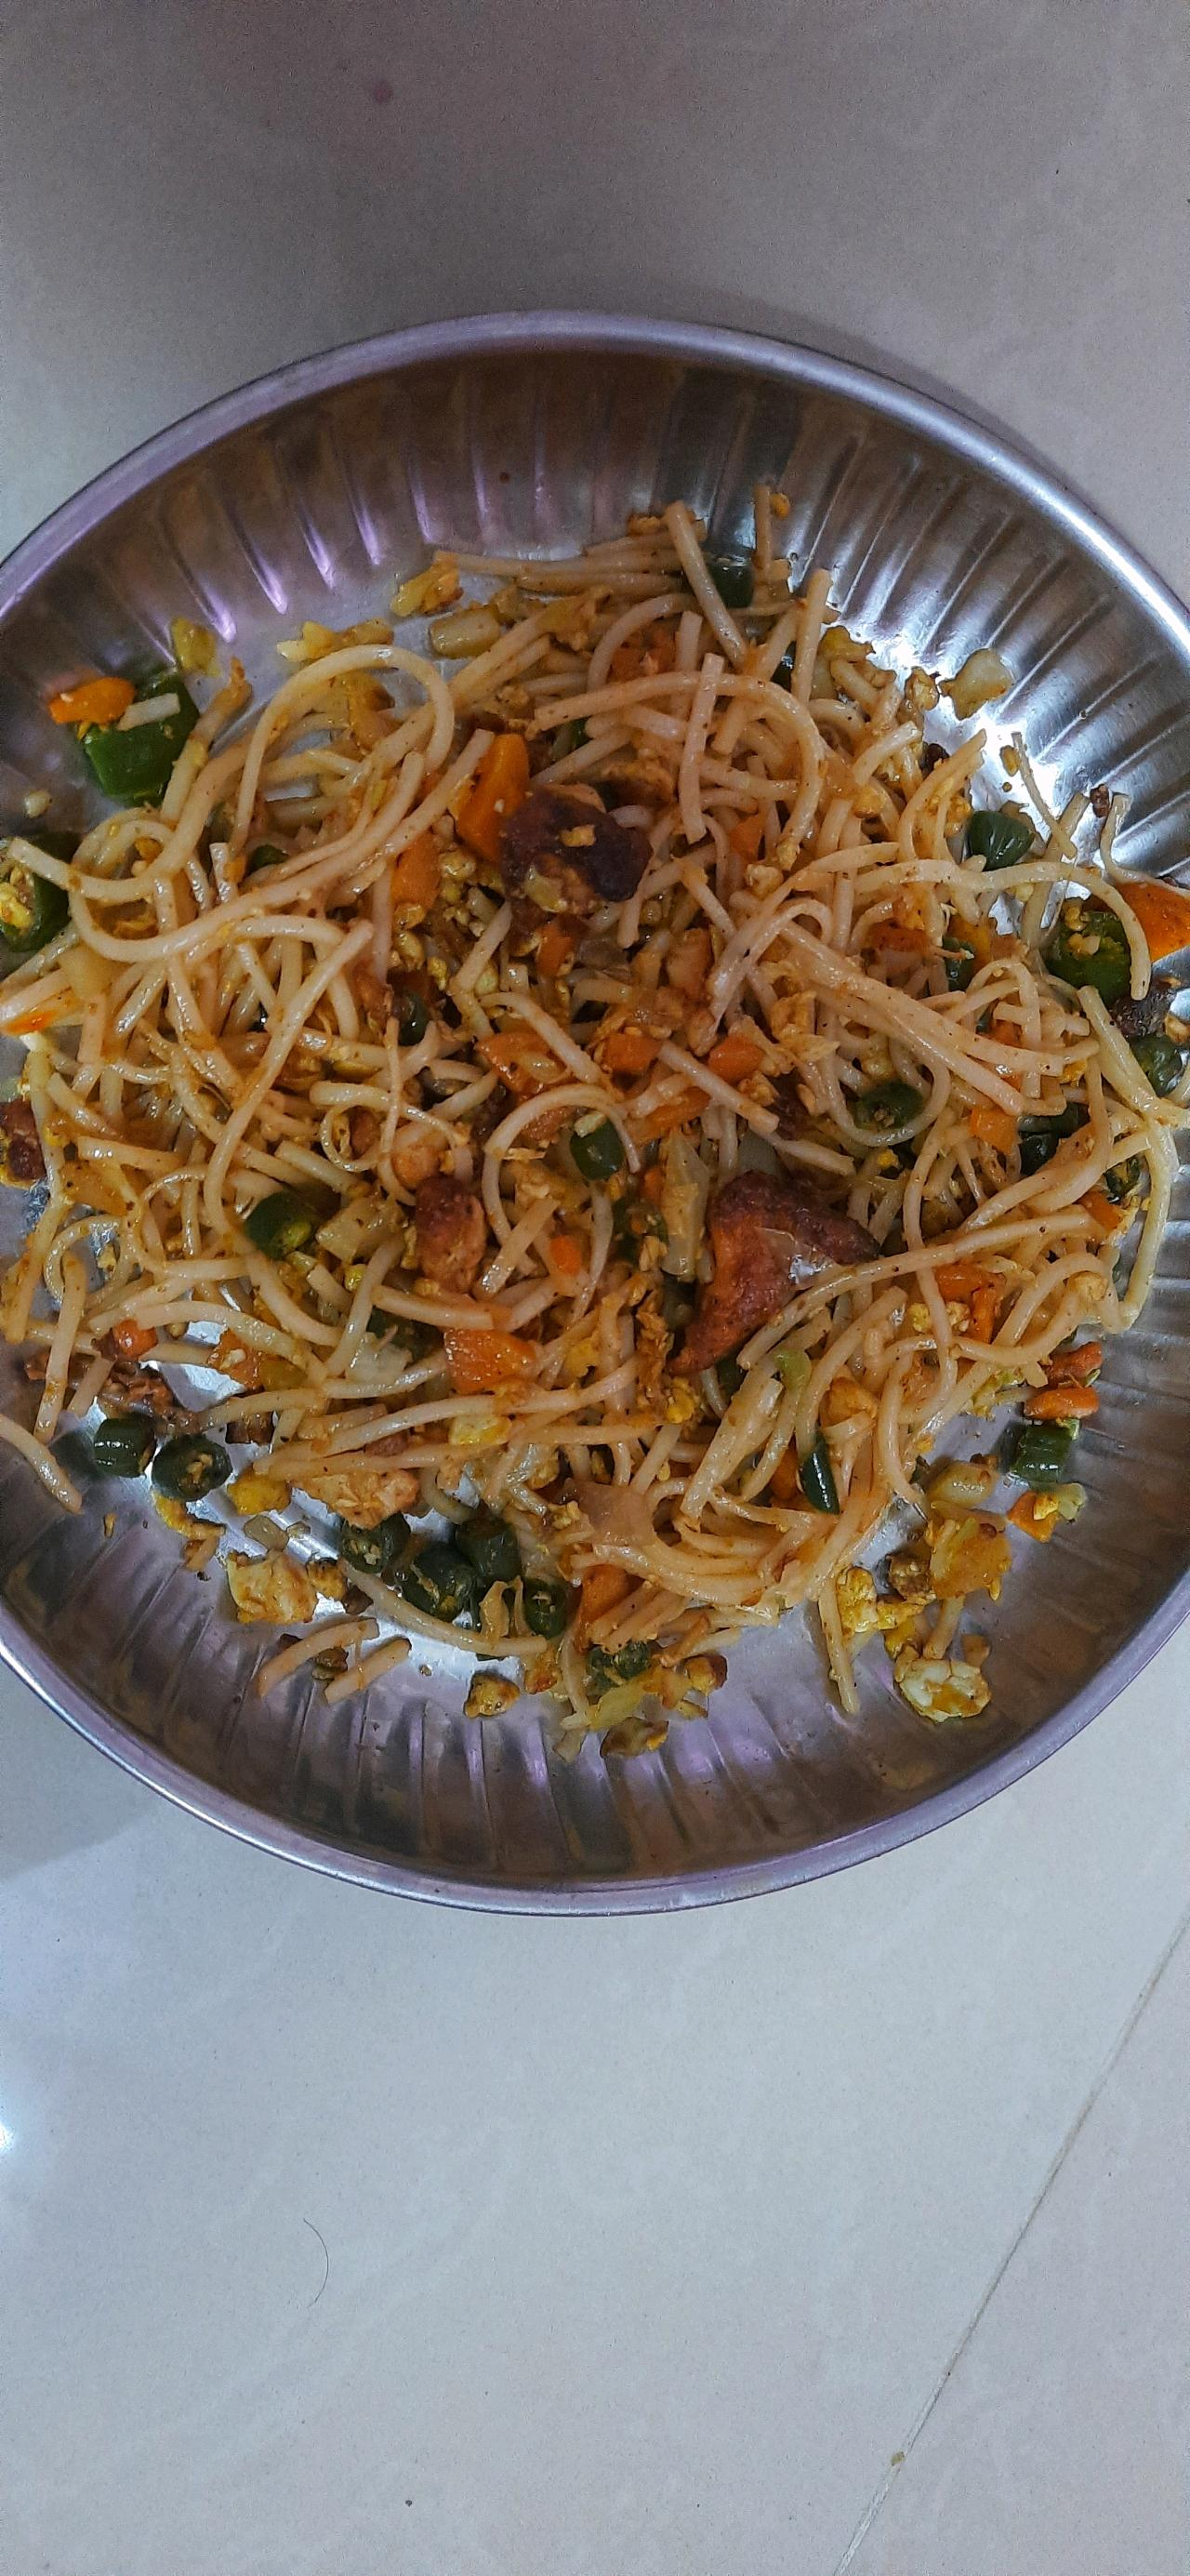 First Try on Chicken Noodles 🍜😋india_food_lovers #tamilnadu_food_lovers #chennai_food_lovers #noodles_lovers